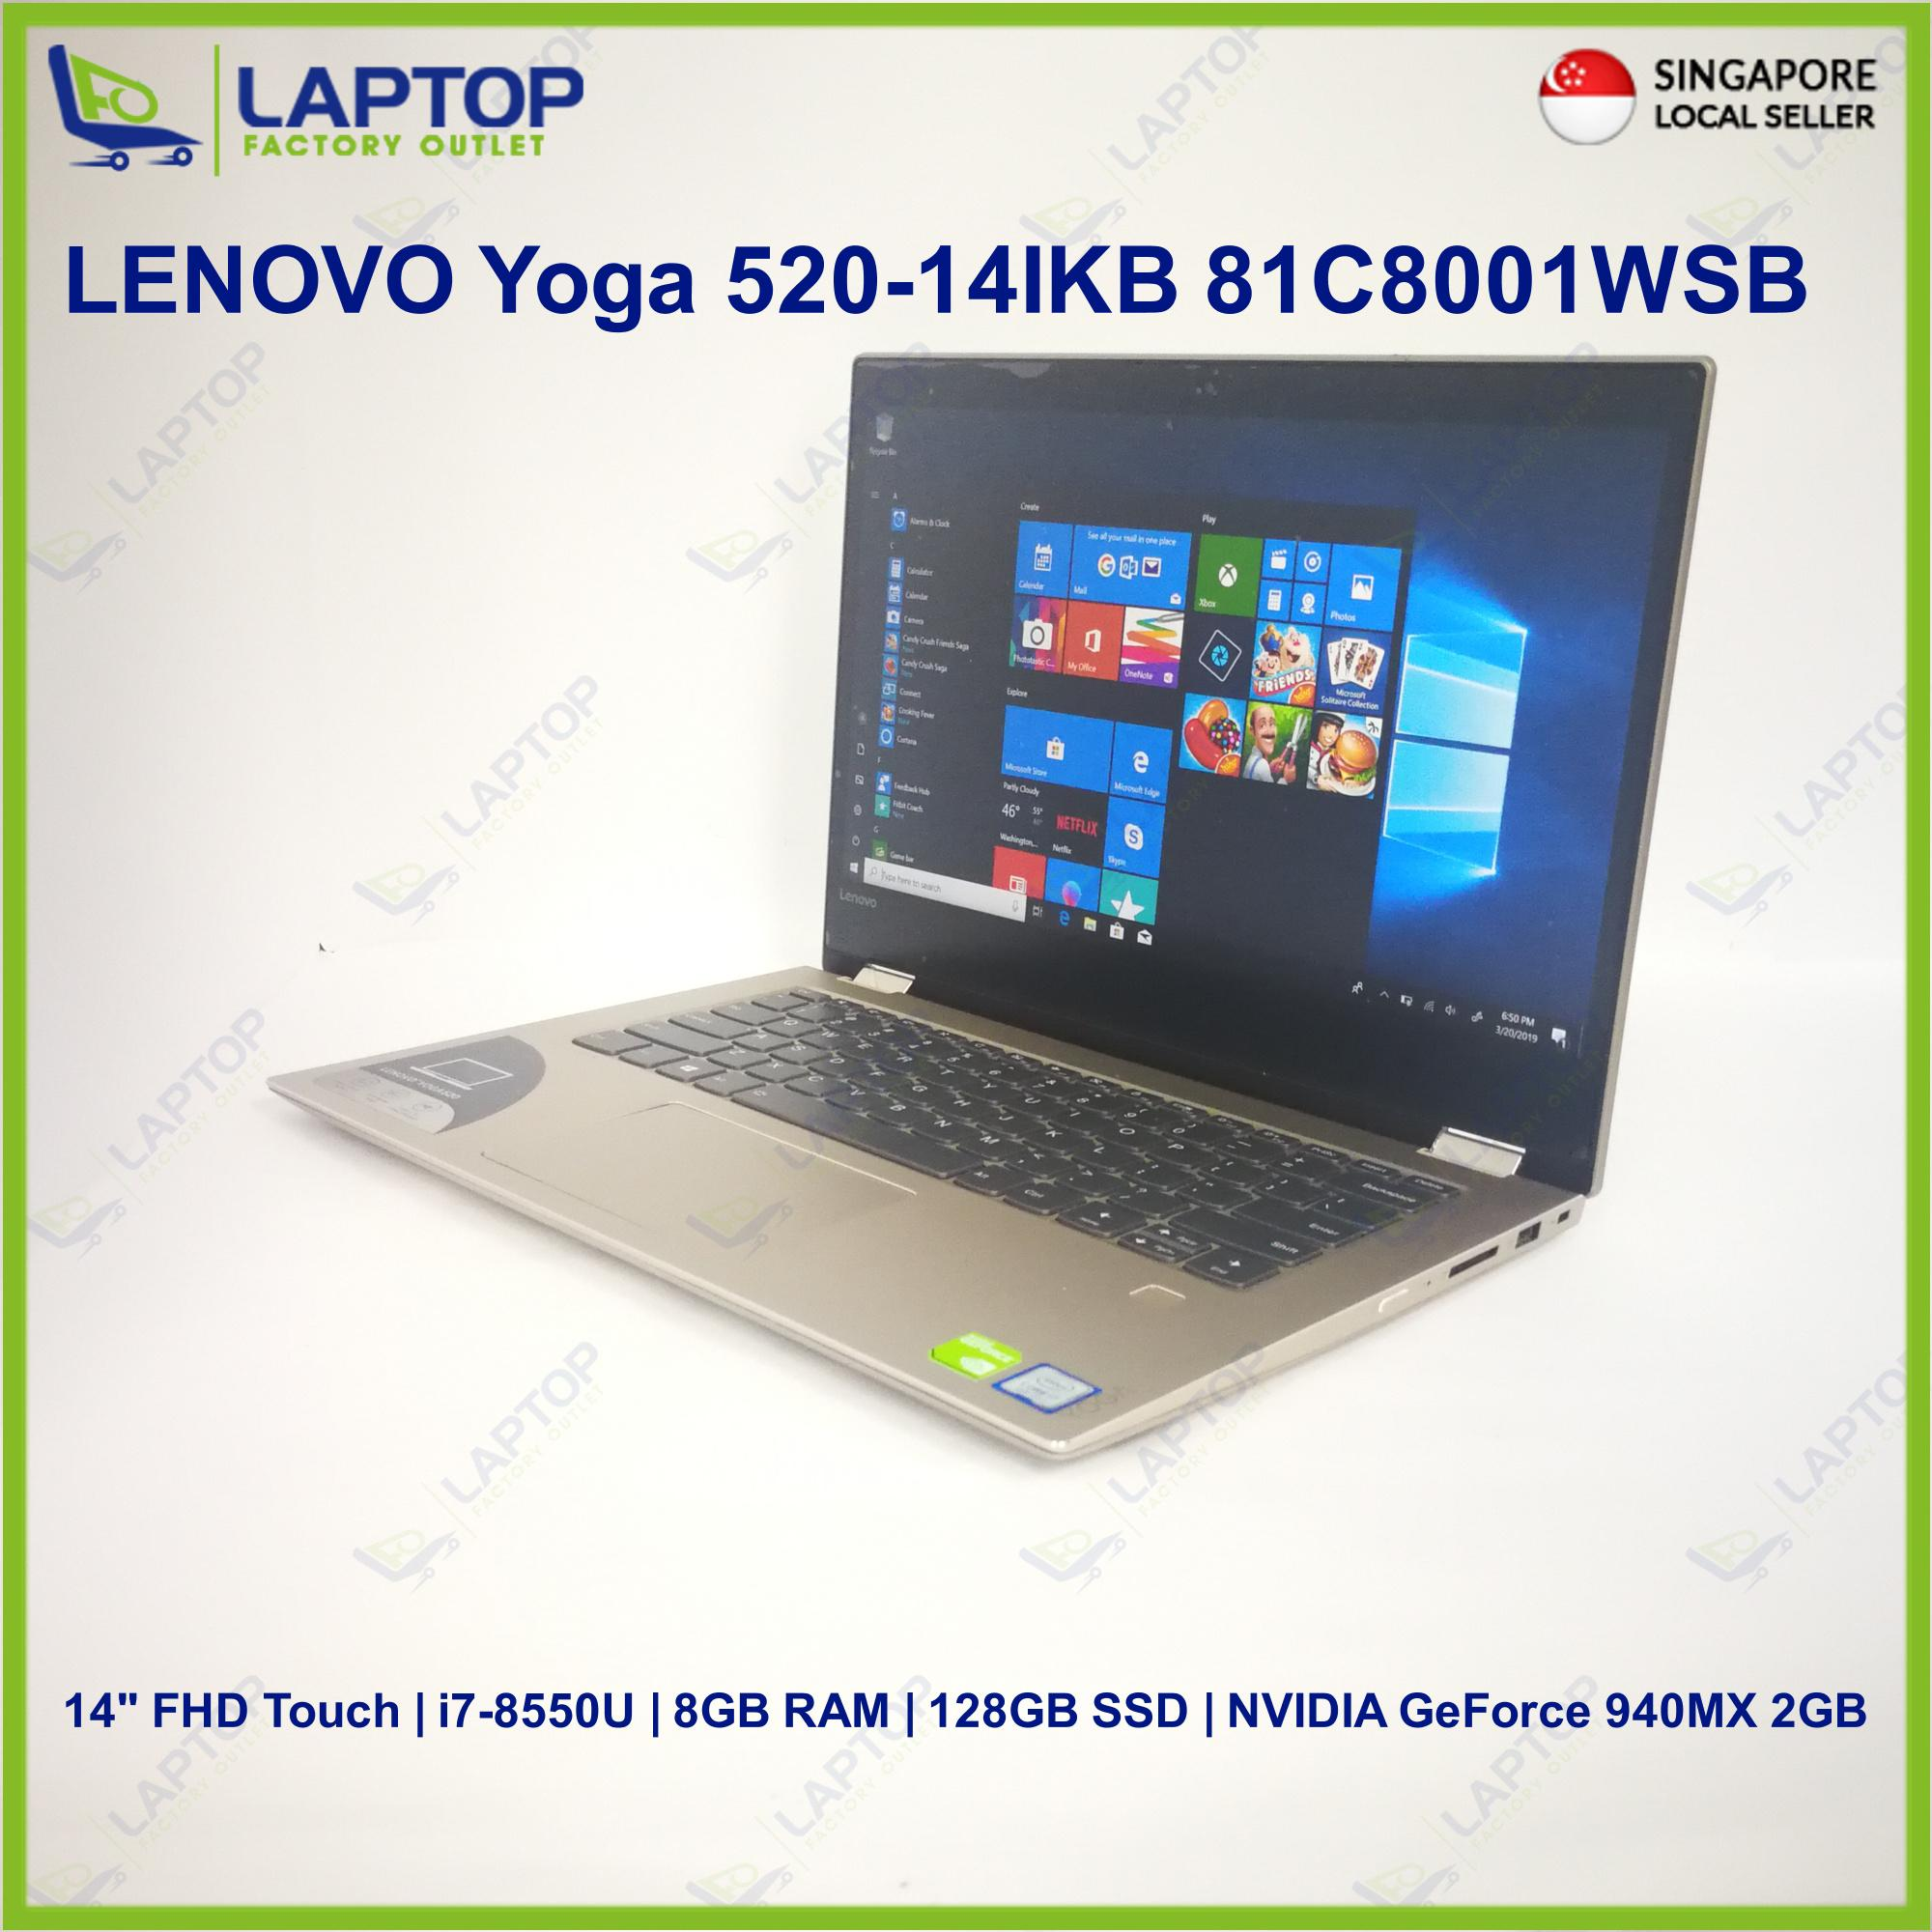 LENOVO Yoga 520-14IKB 81C8001WSB (i7-8/8GB/128GB)Premium Preowned [Refurbished]